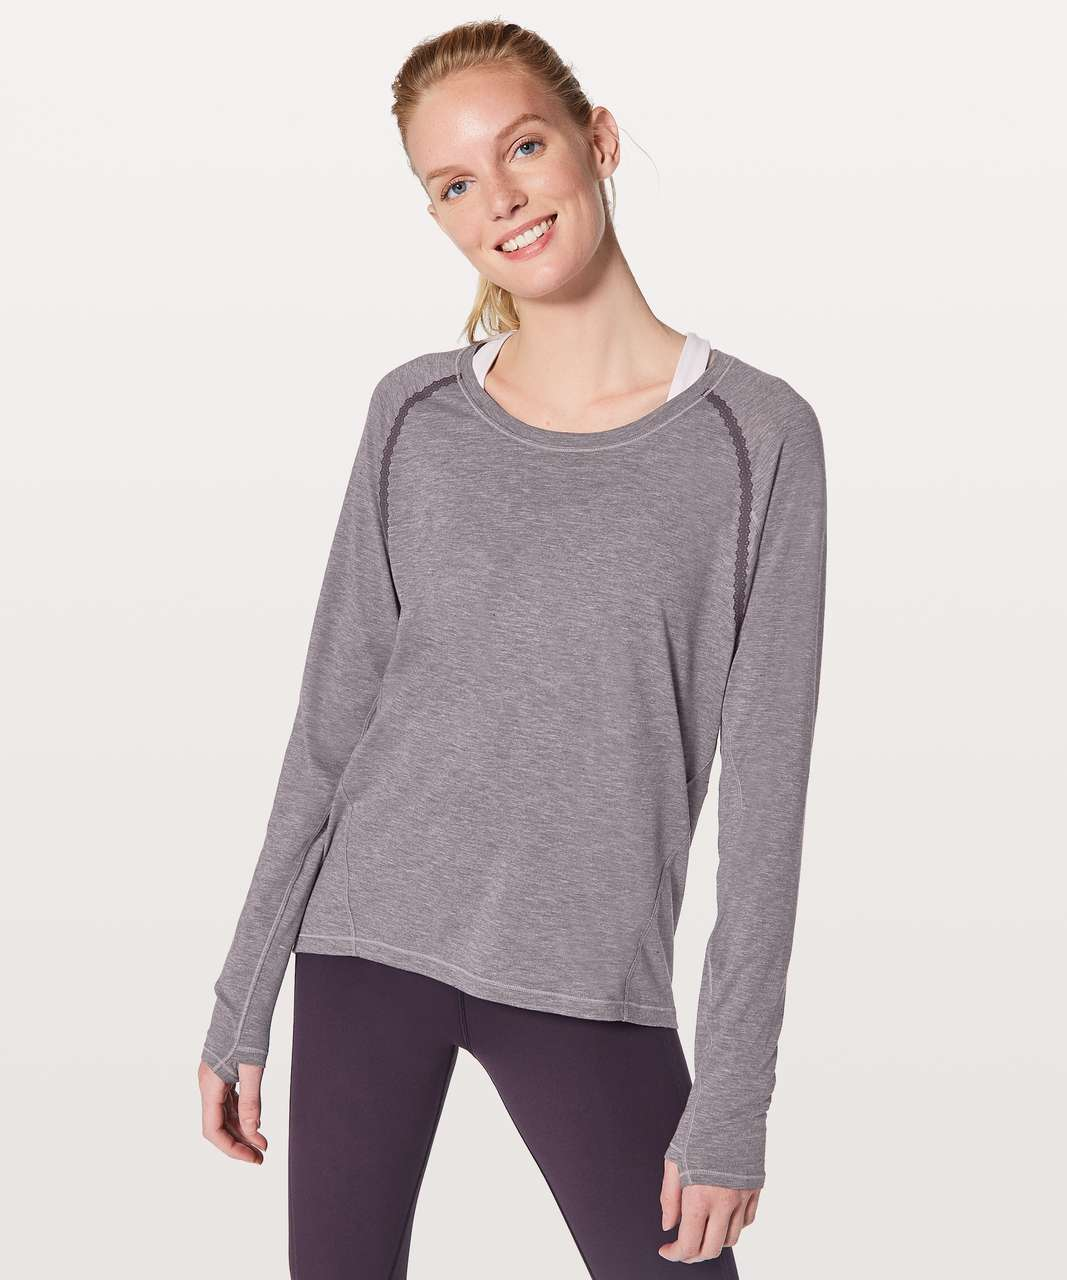 Lululemon Stop Drop & Squat Long Sleeve - Heathered Black Currant